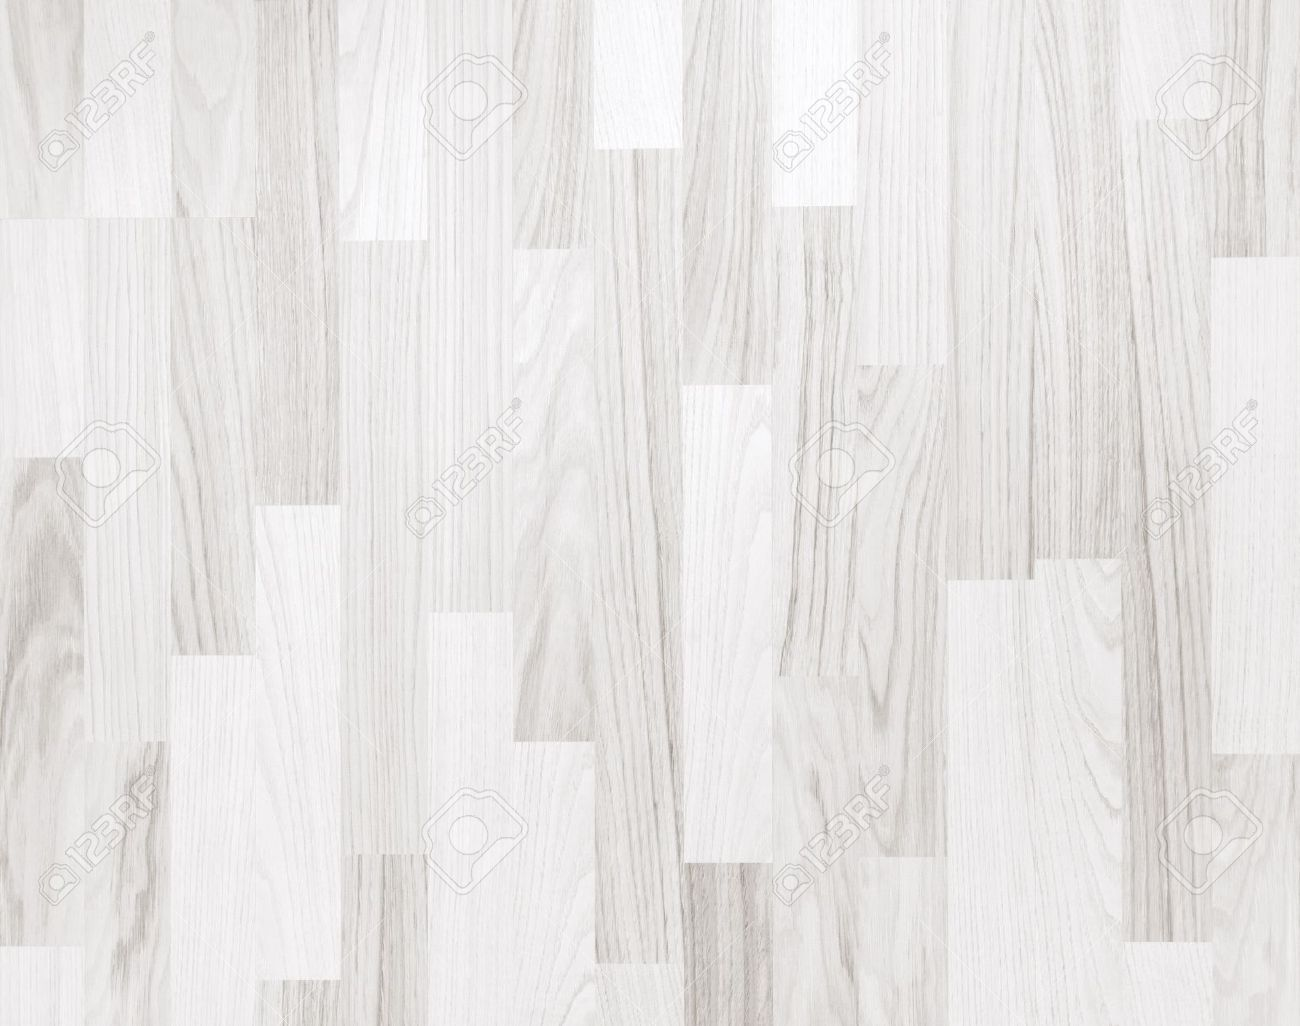 White Parquet Floors